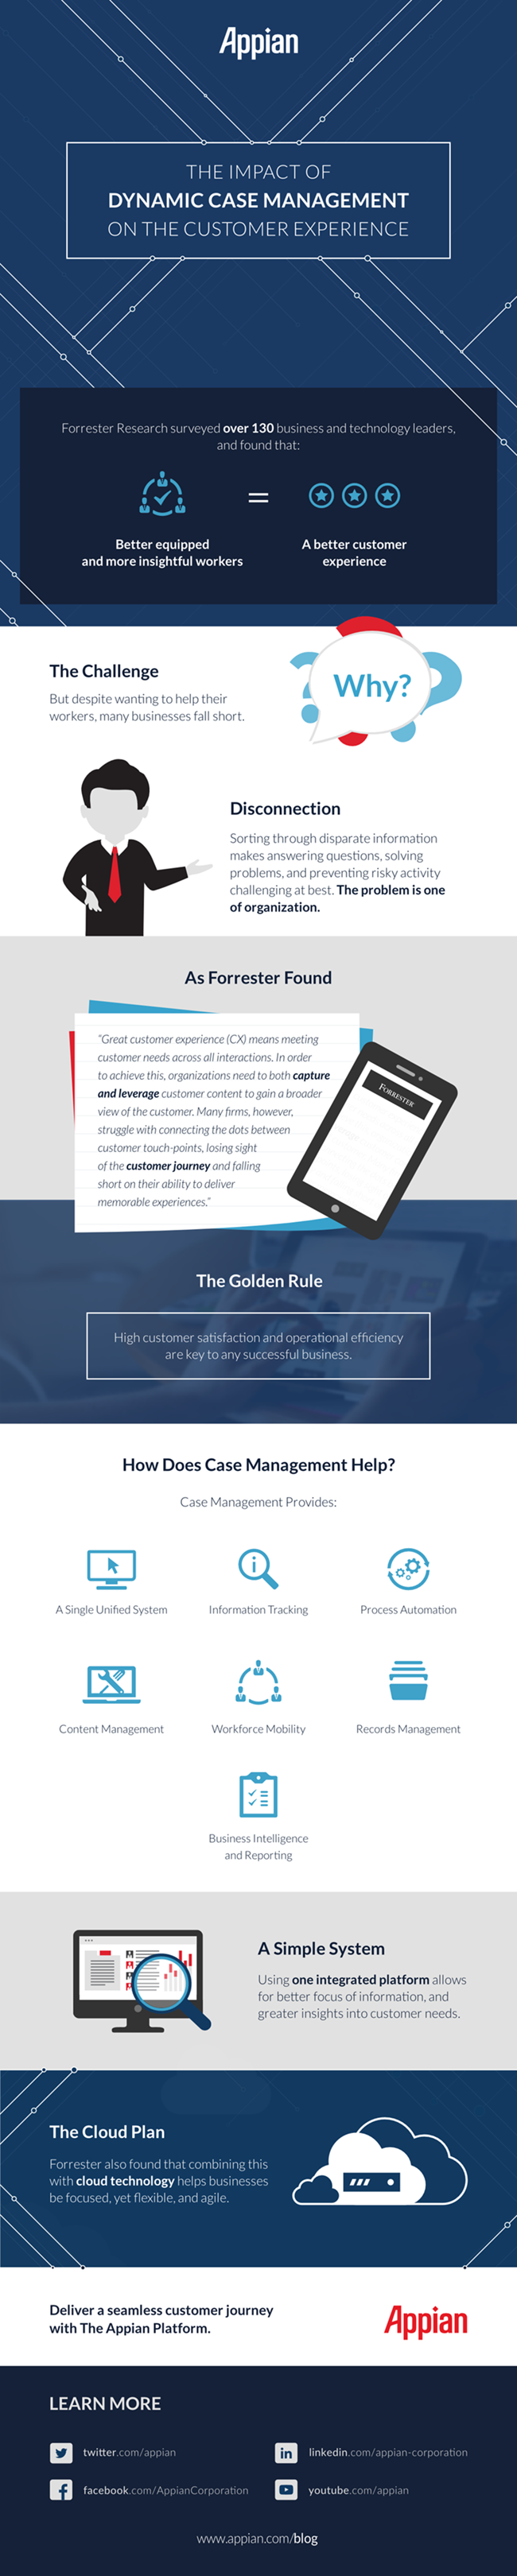 [Infographic] The Impact of Dynamic Case Management on the Customer Experience